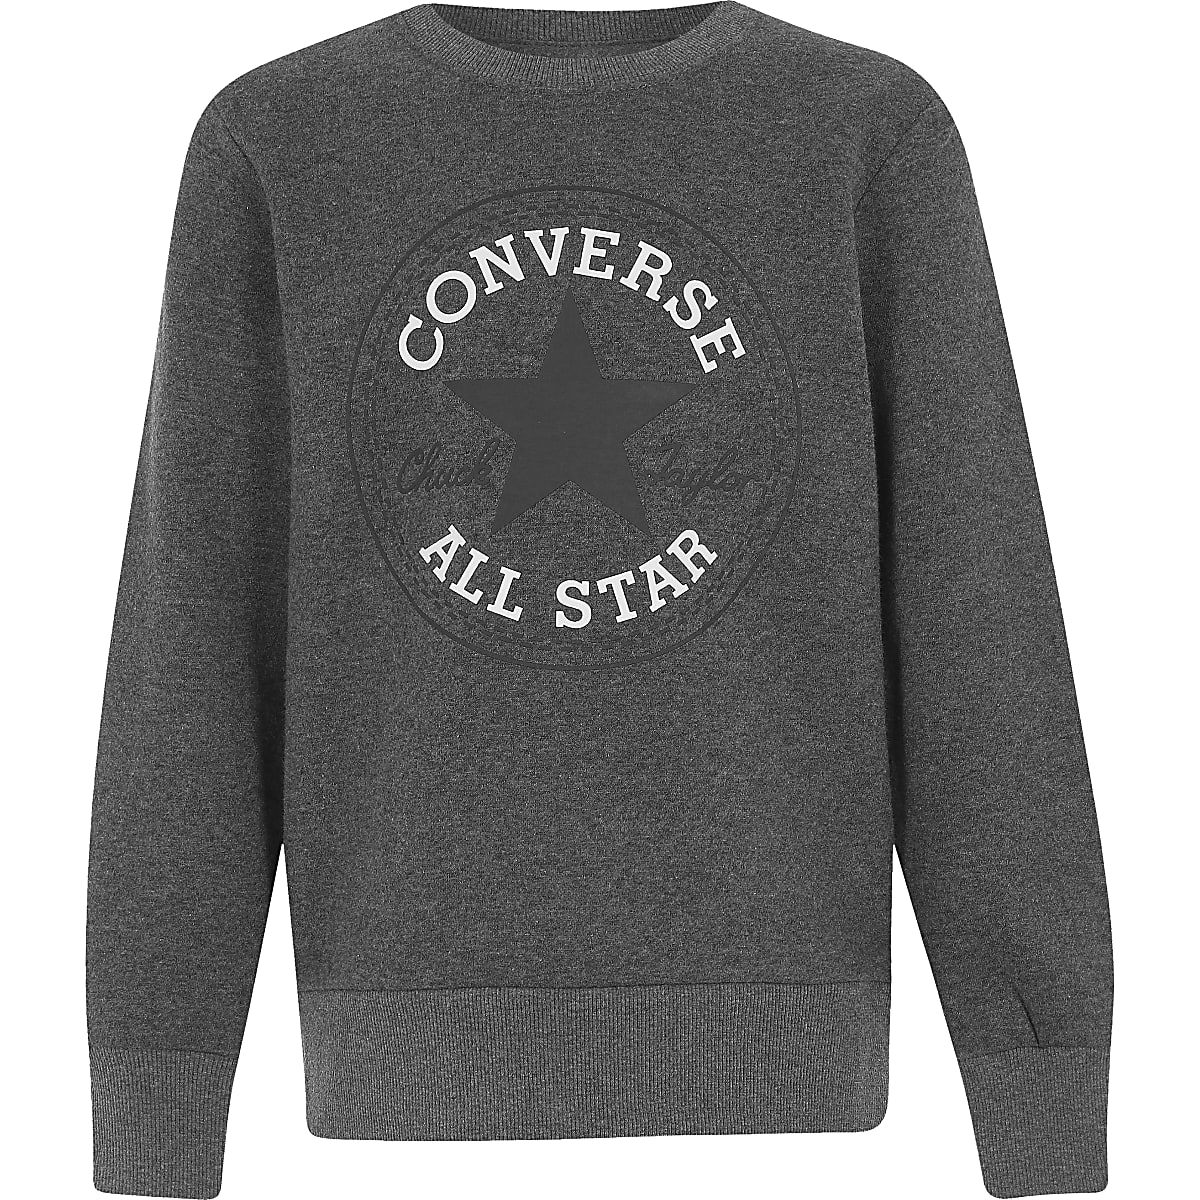 Boys Converse grey crew neck logo sweatshirt